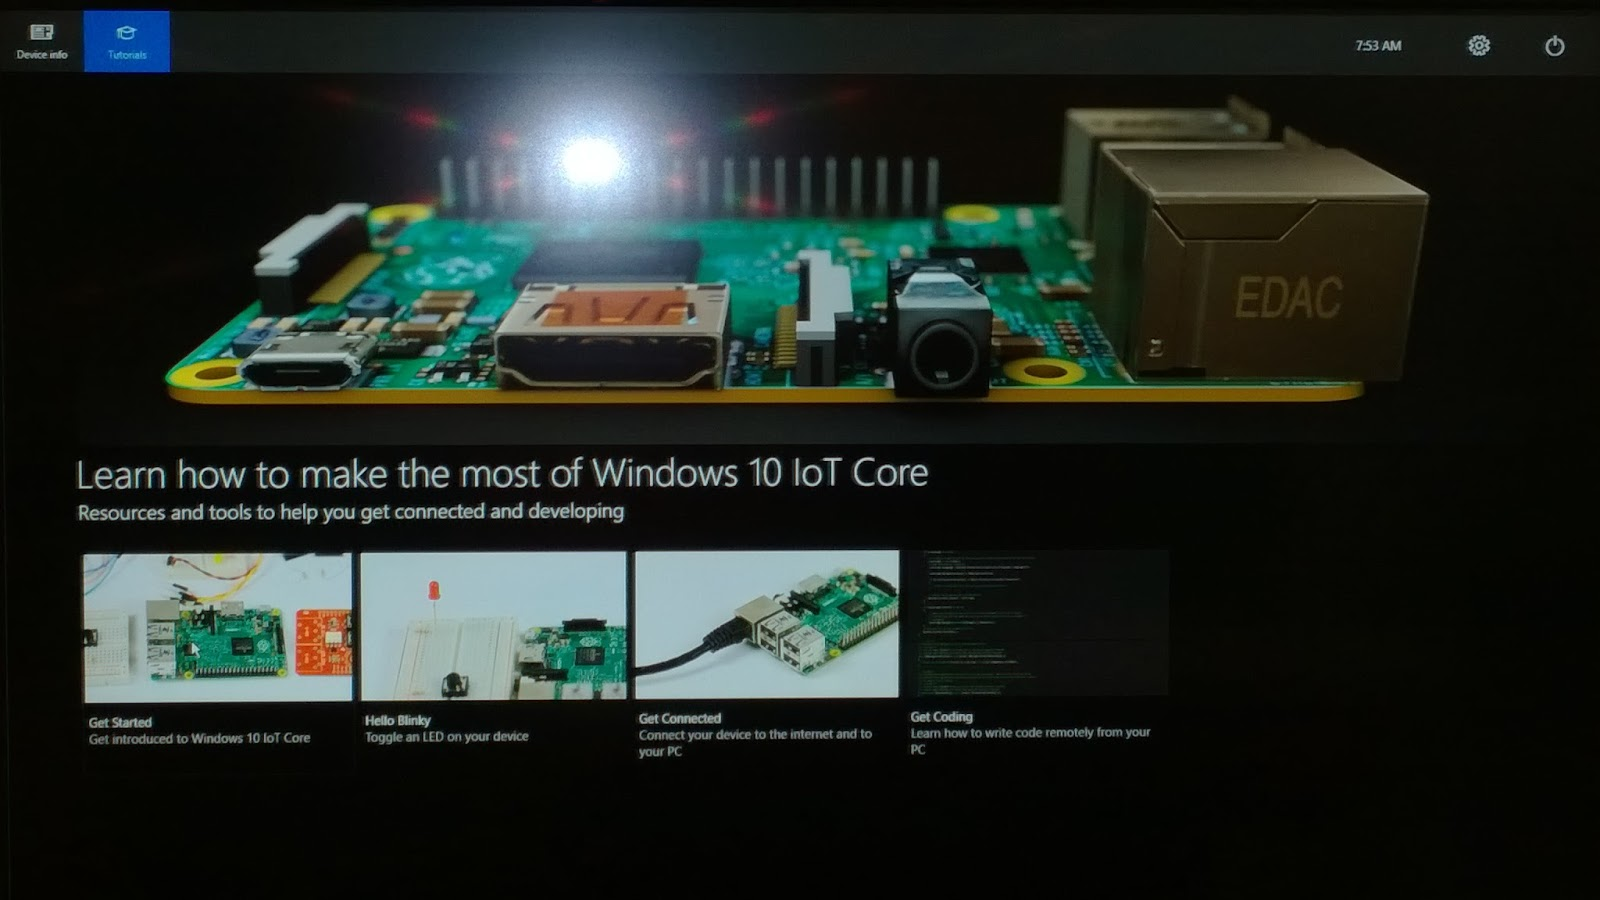 MathiasWestin: Raspberry PI 2 and Windows 10 IoT Core